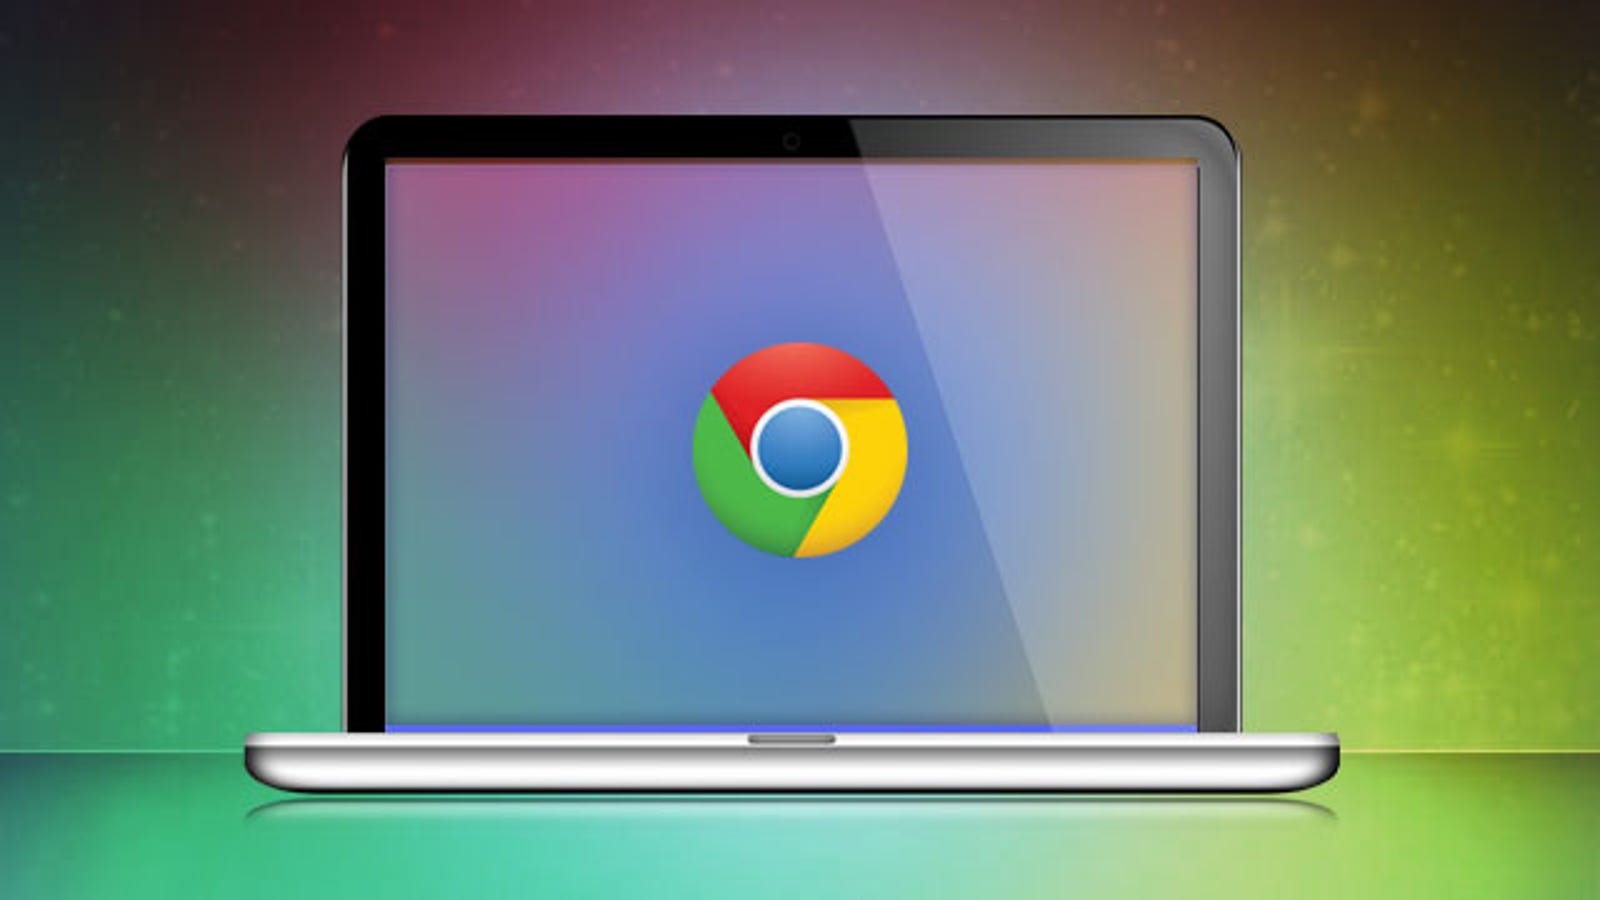 install chrome os onto usb